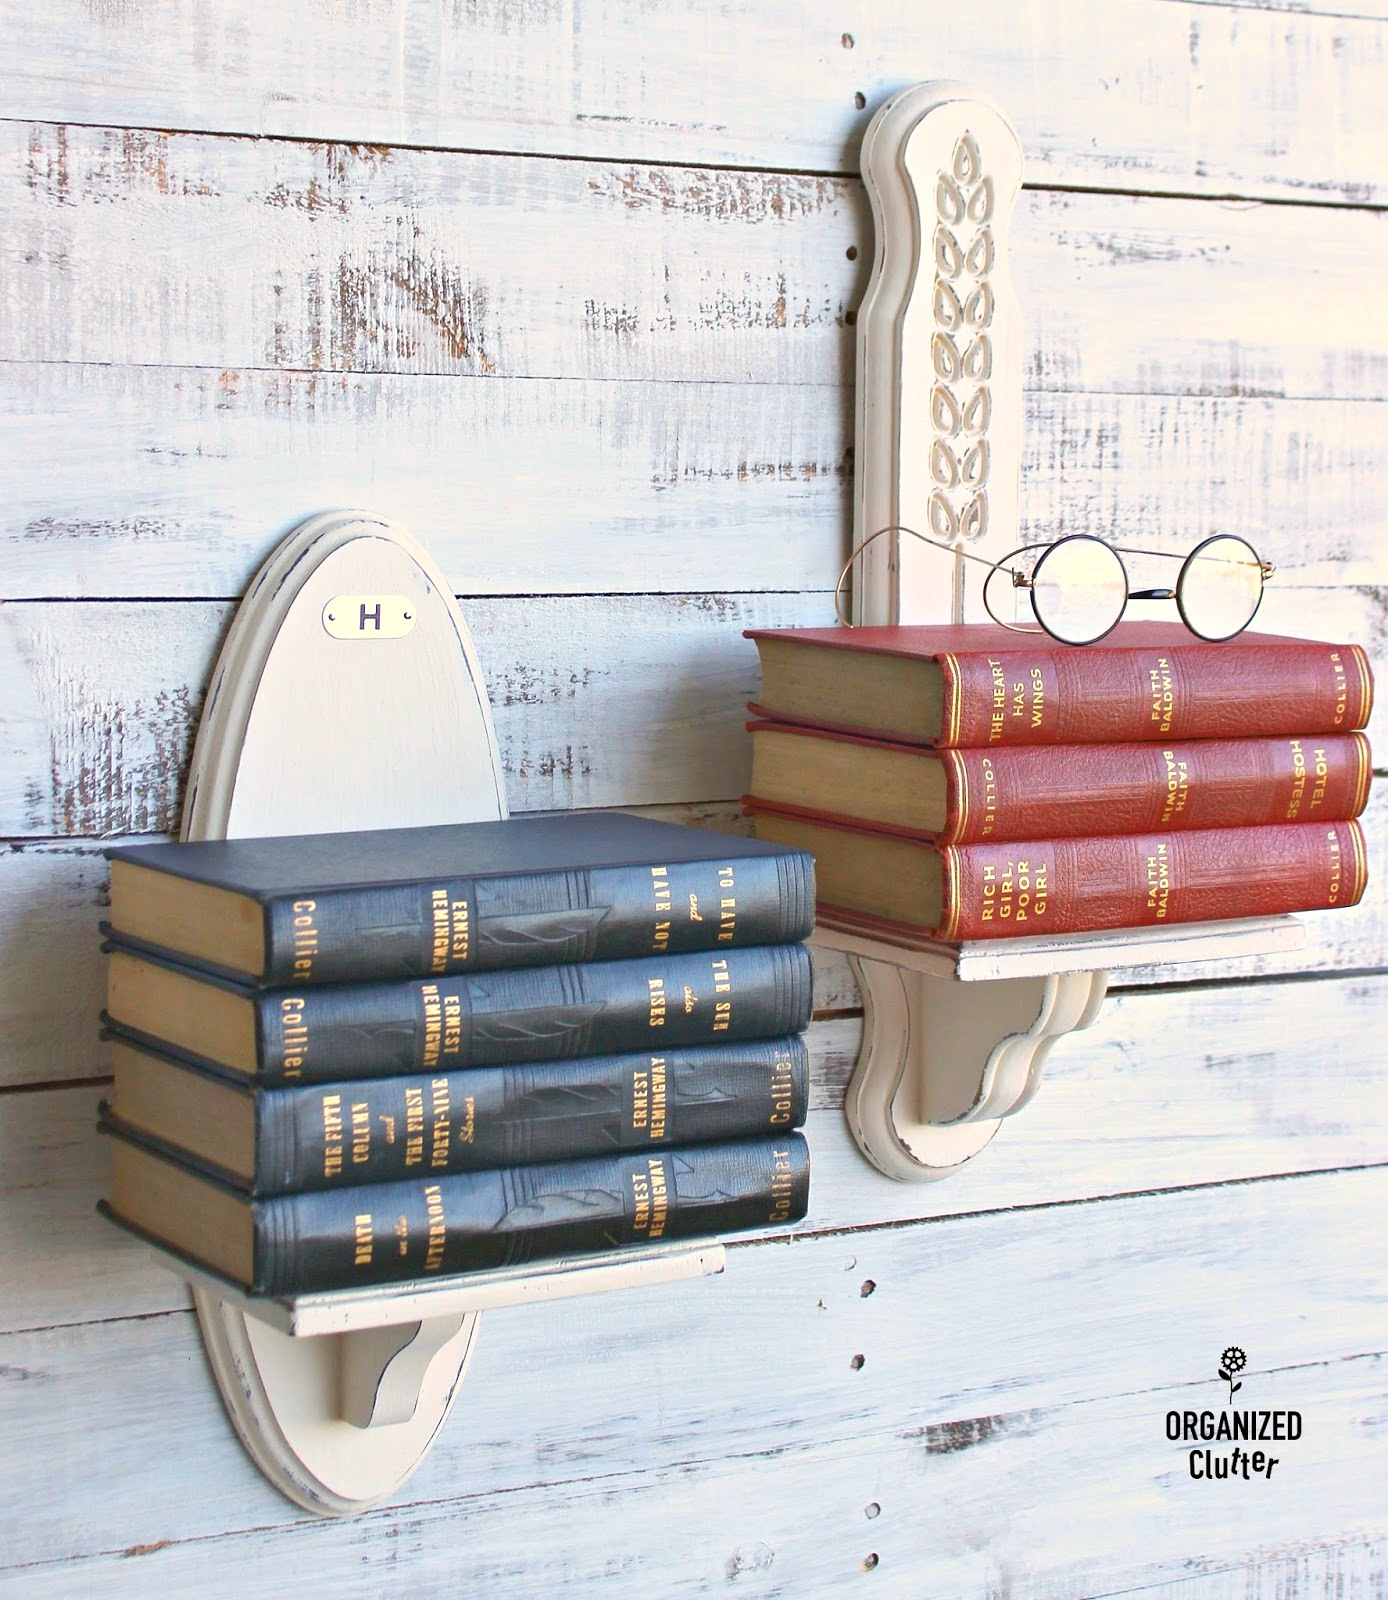 Candle sconce wall book shelves by Organized Clutter, featured on Funky Junk Interiors